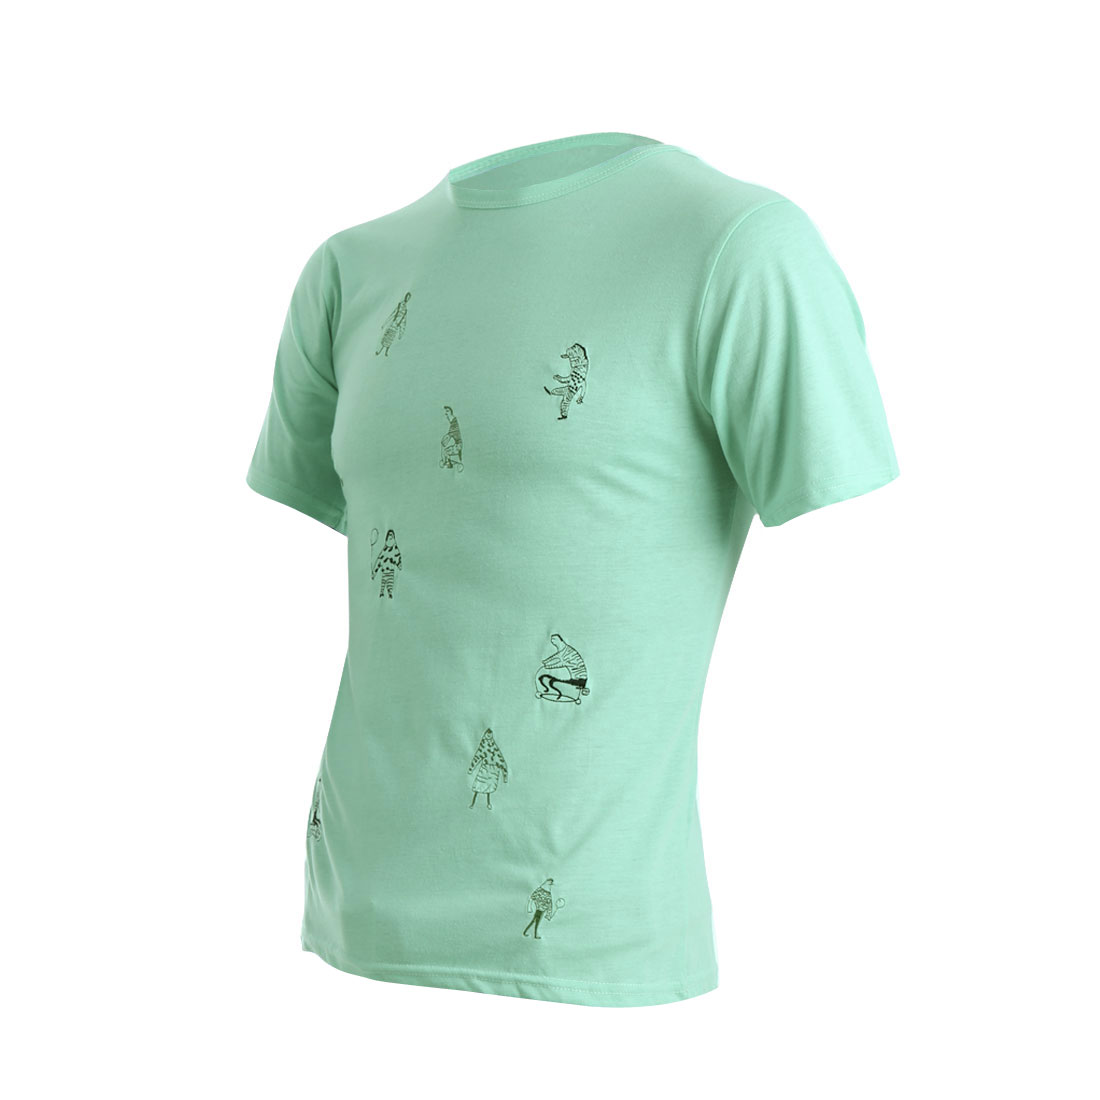 Mens Chic Round Neck Short Sleeve Embroidered Cartoon Design Mint Shirt S